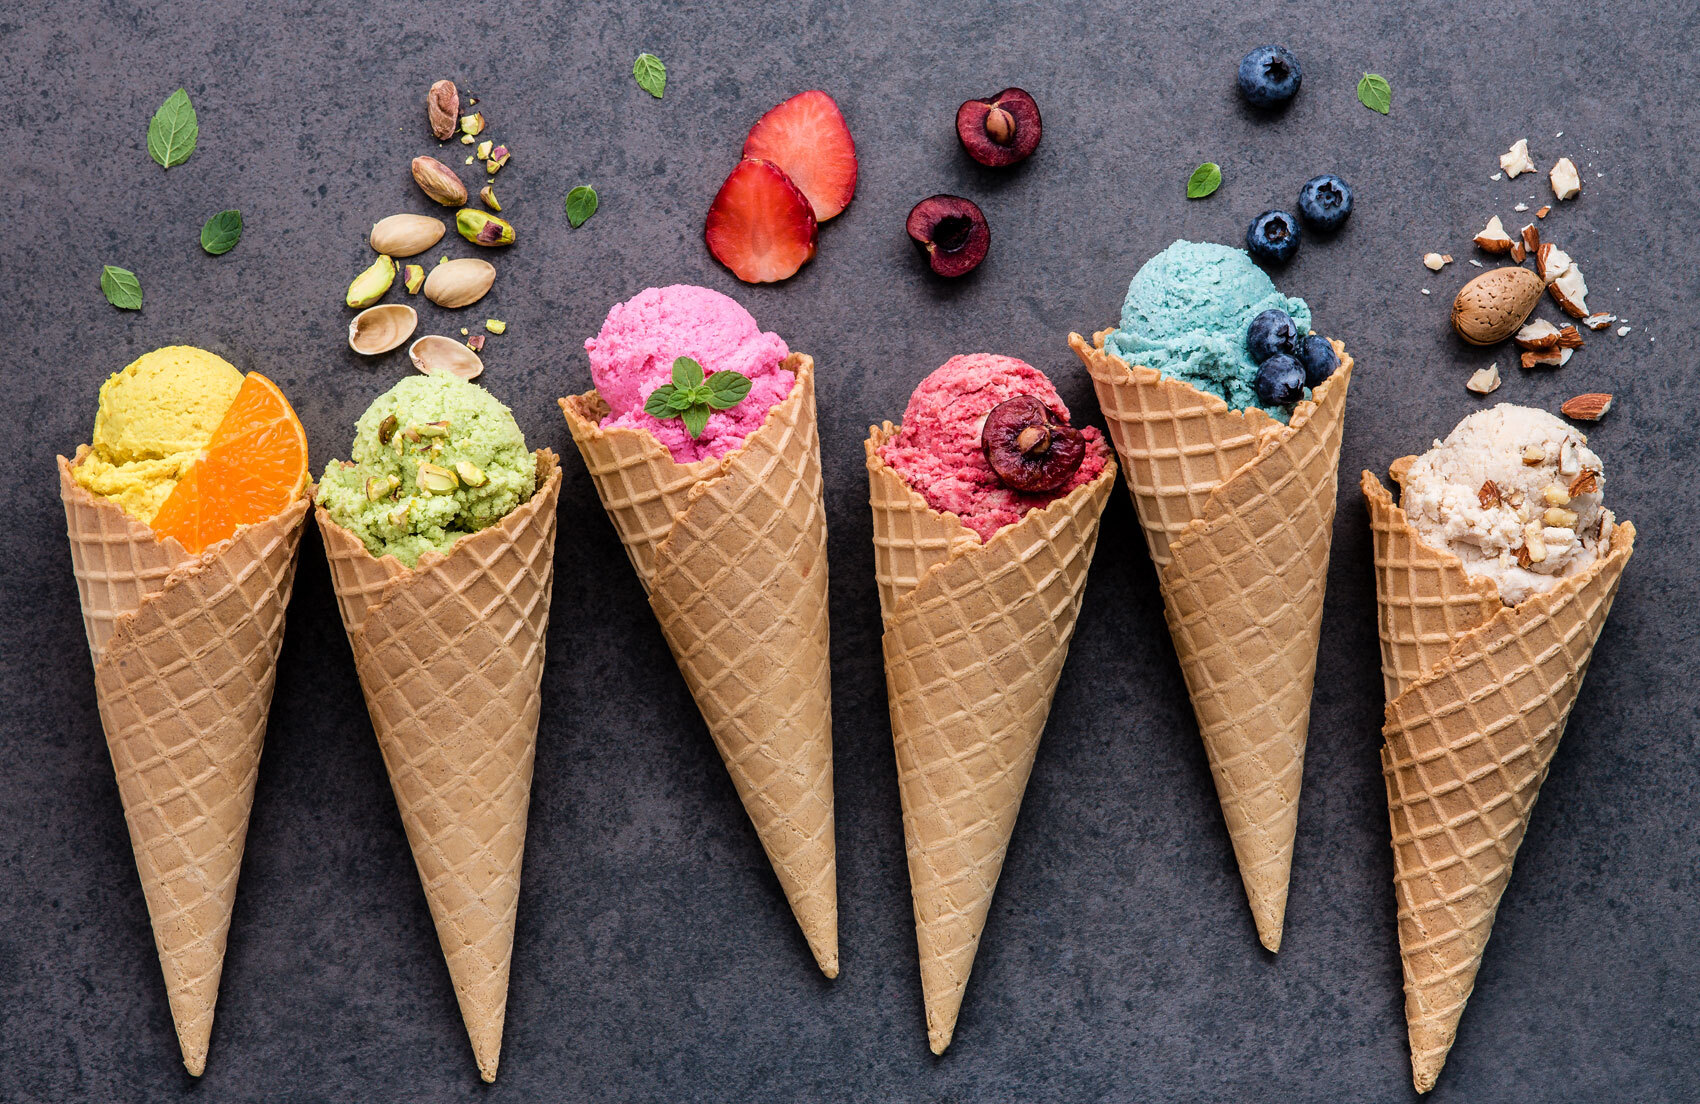 ICE CREAM, A VERY OLD AND TASTY SNACK